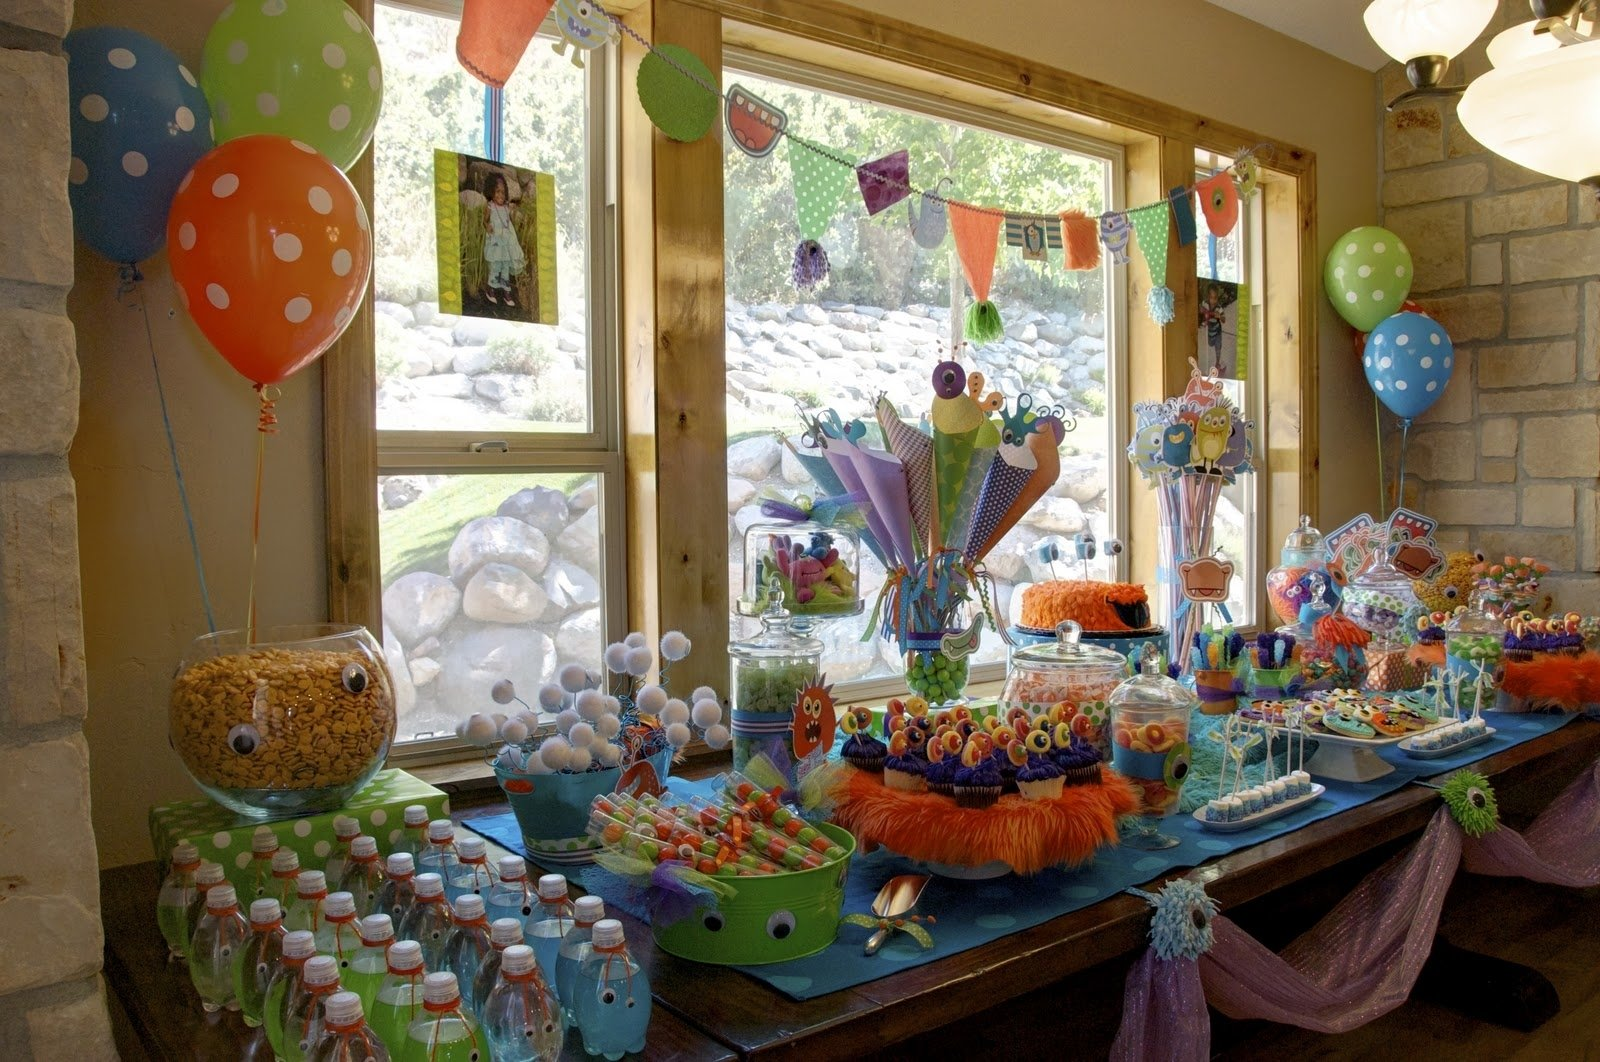 10 Beautiful Ideas For 3 Year Old Birthday Party 3 year old birthday party ideas nisartmacka 13 2020